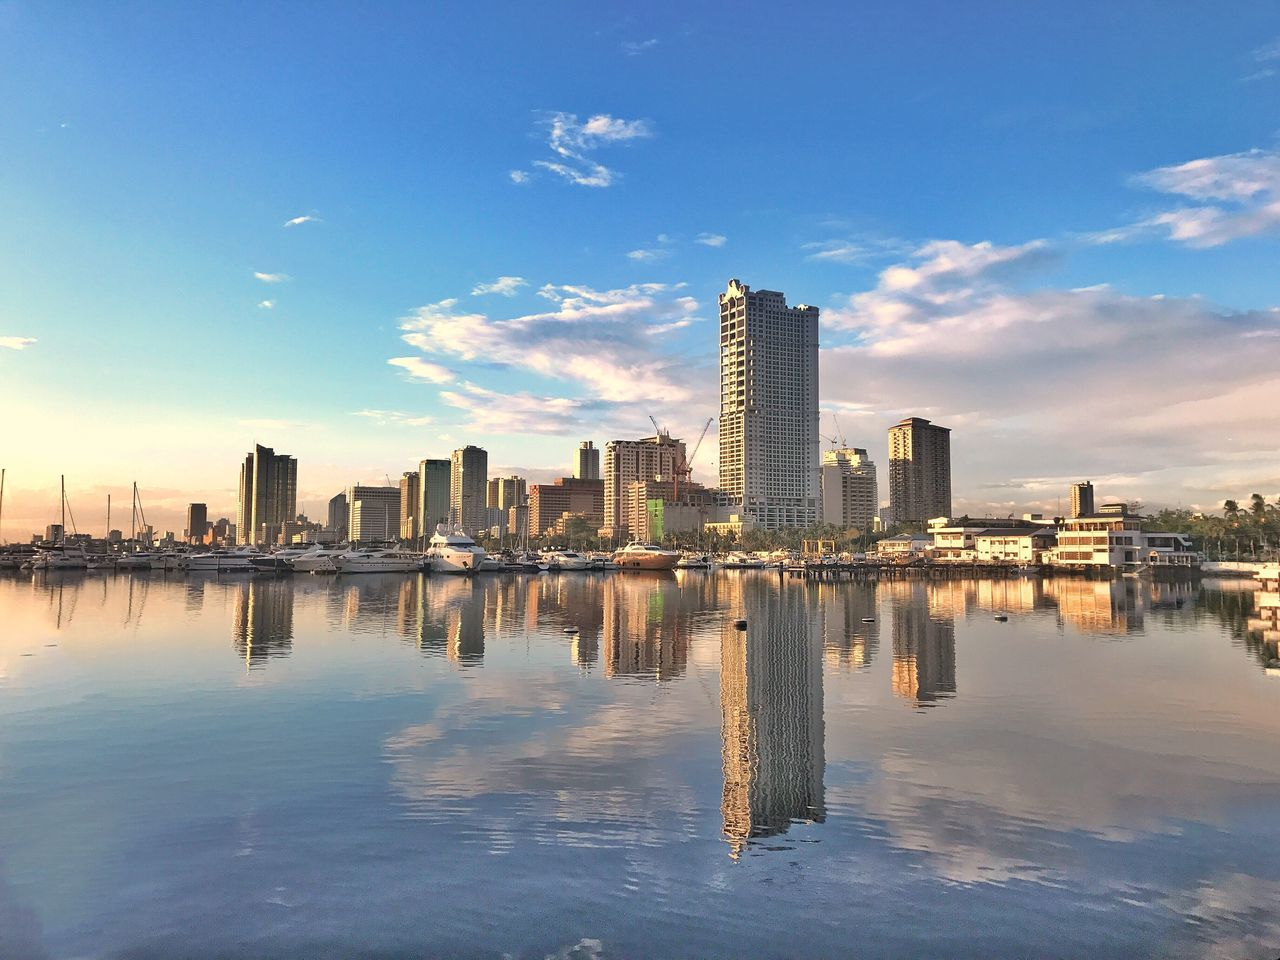 skyscraper, water, architecture, building exterior, sky, city, built structure, reflection, cityscape, urban skyline, modern, waterfront, outdoors, no people, nature, day